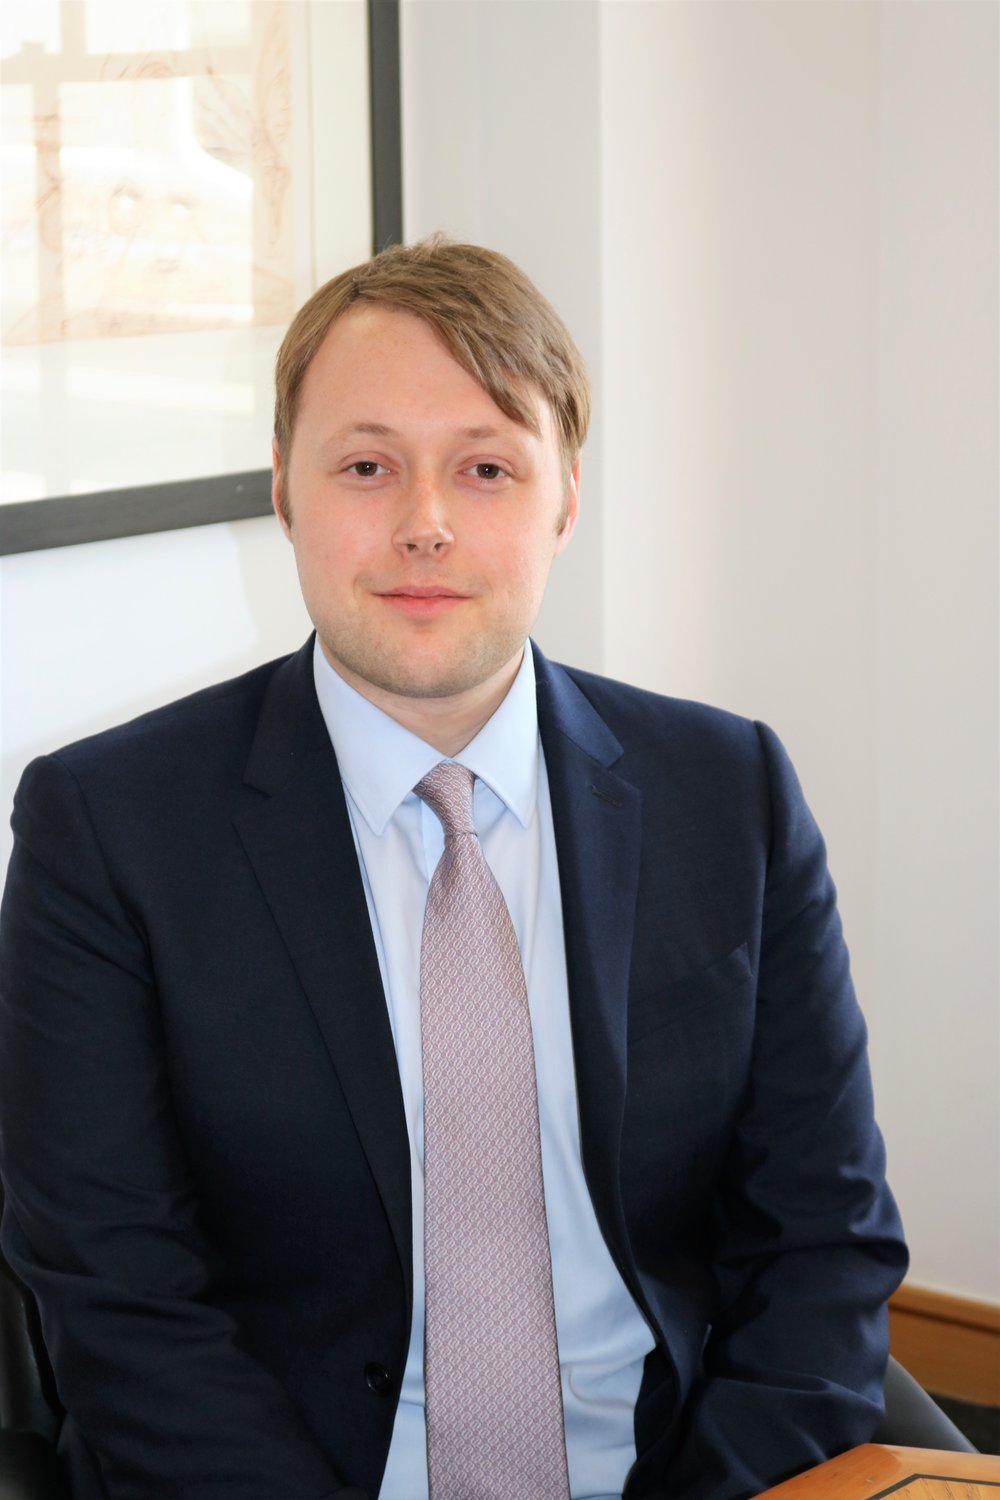 Adam Diamond, Legal Assistant   Adam assists with all aspects of the Local Business offering, working alongside David Yetman.  He works on shareholder agreements and documents for companies and partnerships.